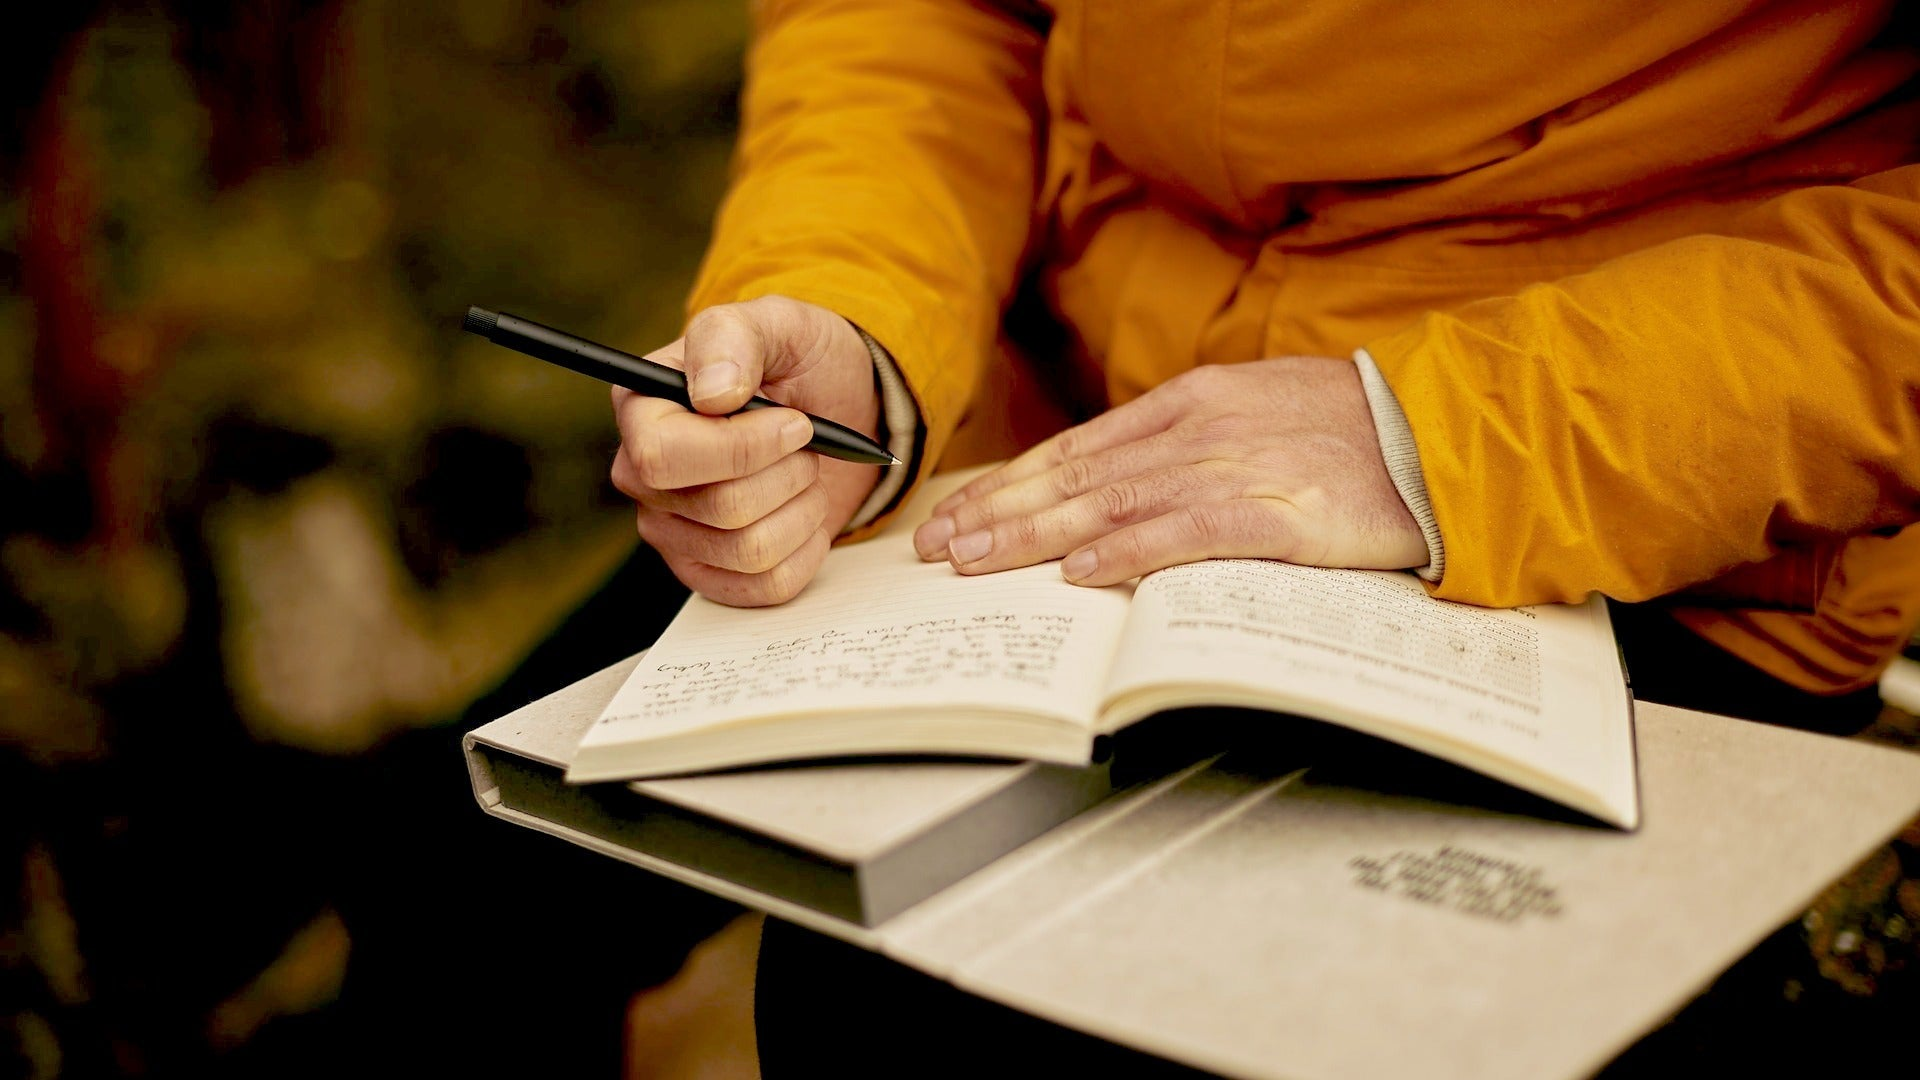 Use These Prompts If You Need Help Journaling